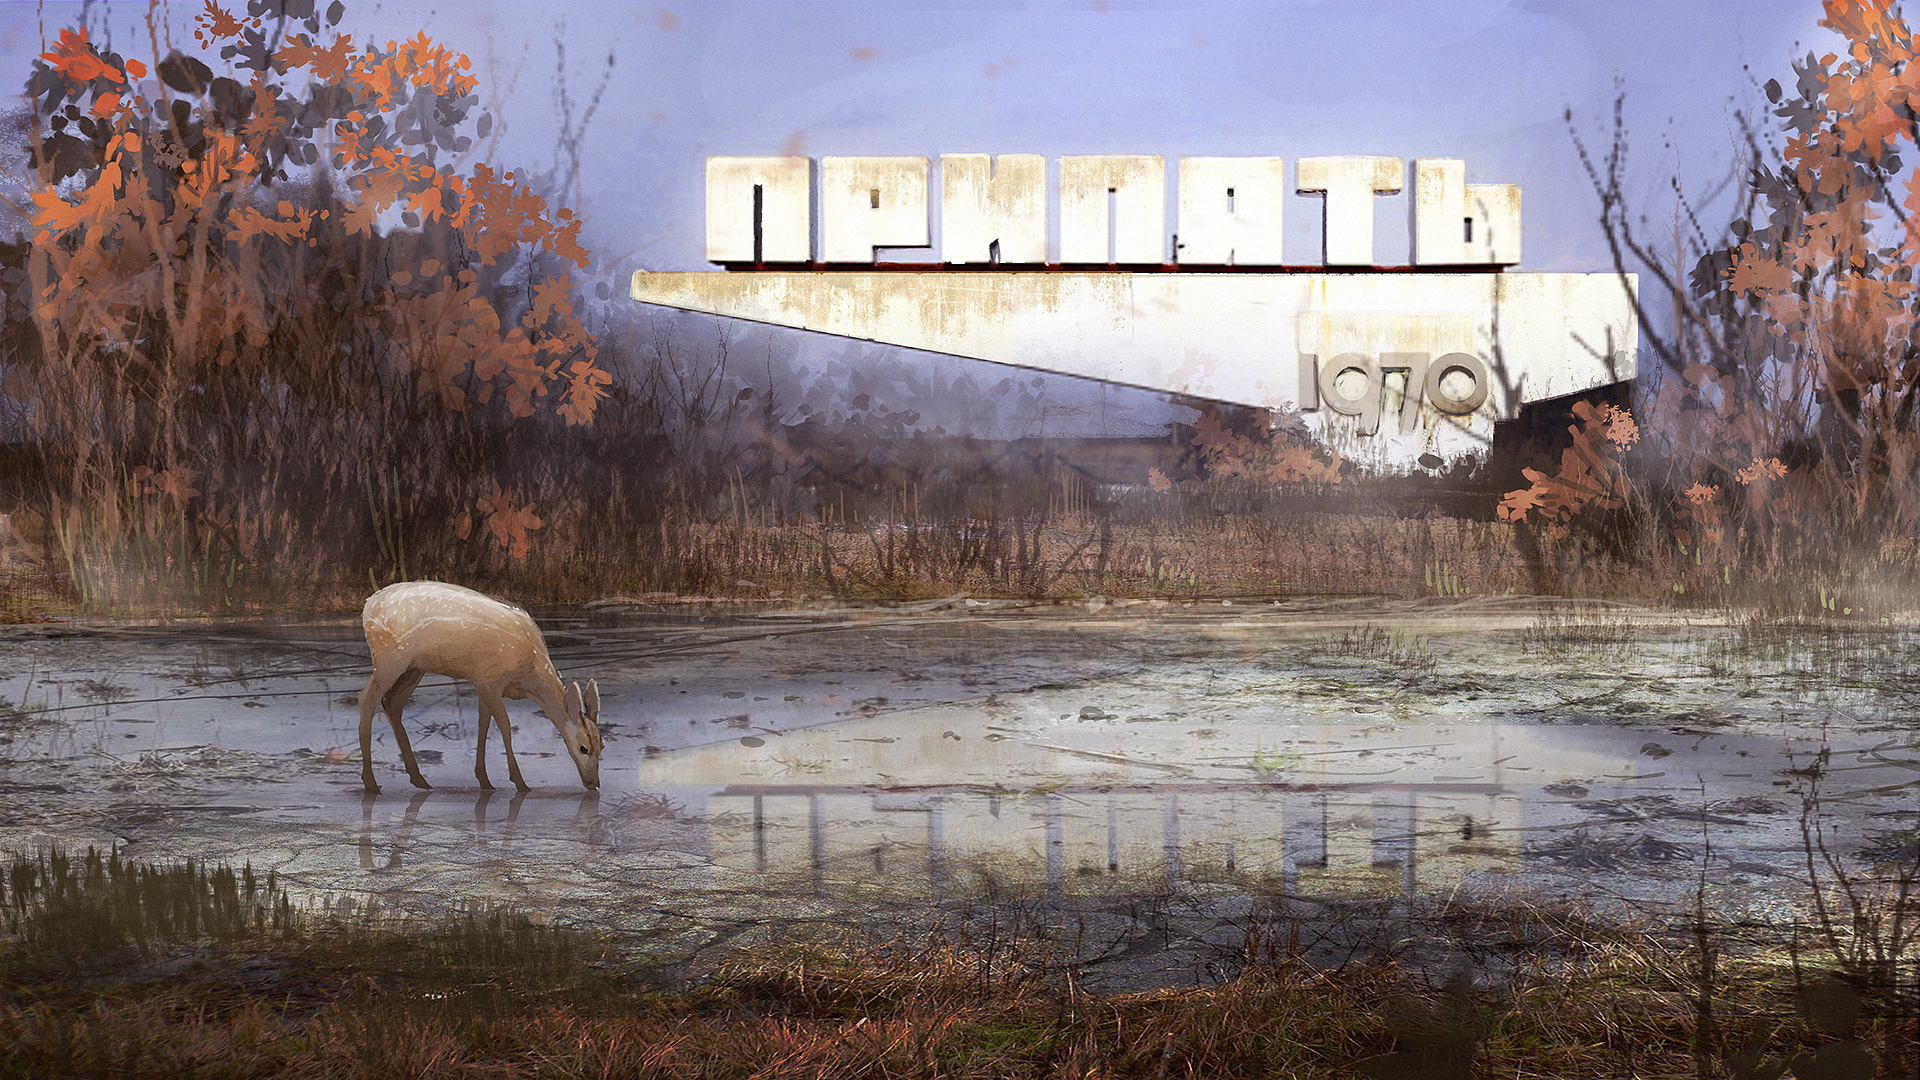 Welcome to Pripyat by MacRebisz